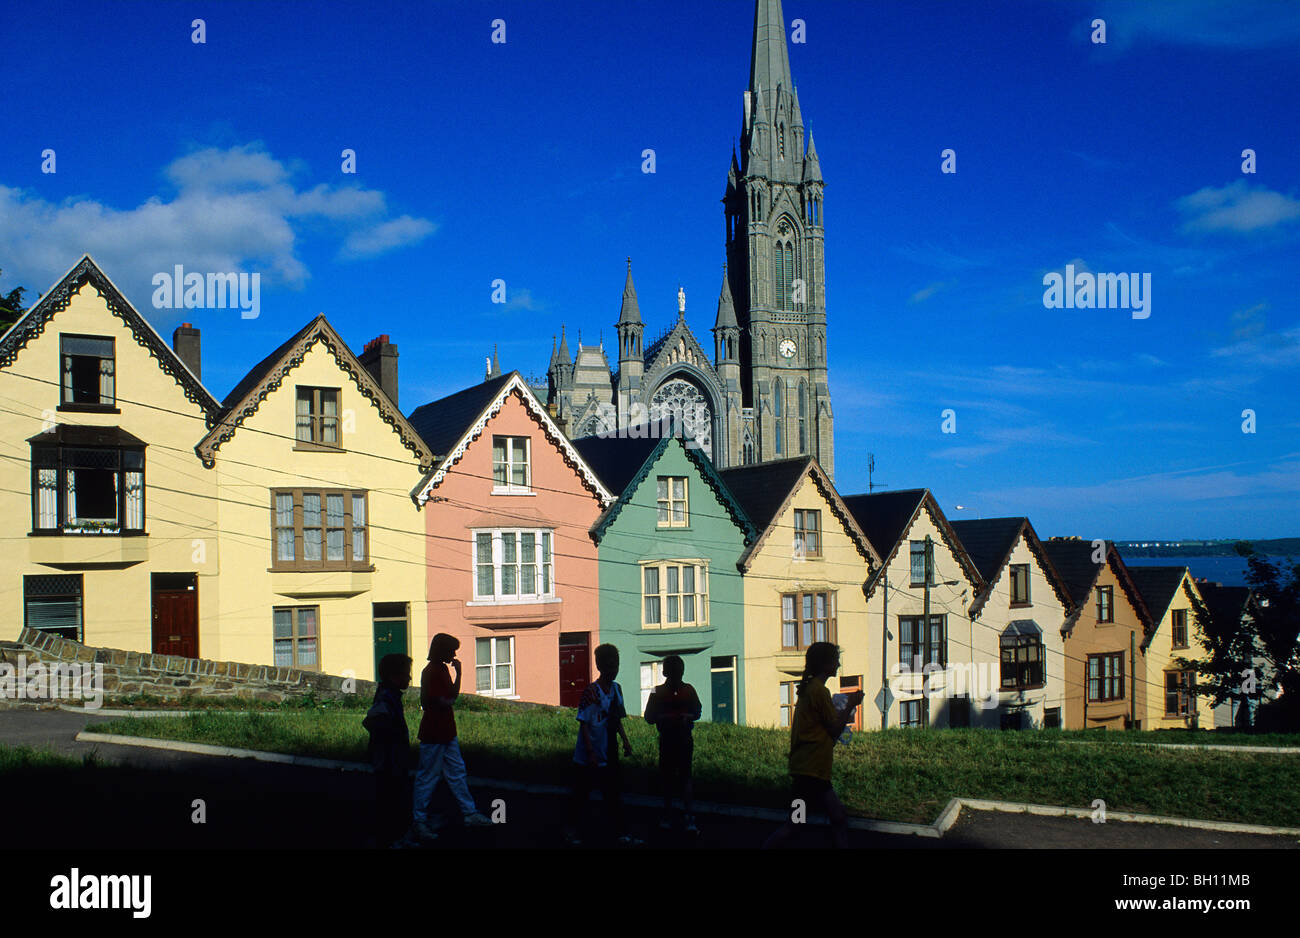 colourful-facades-of-houses-at-the-old-t